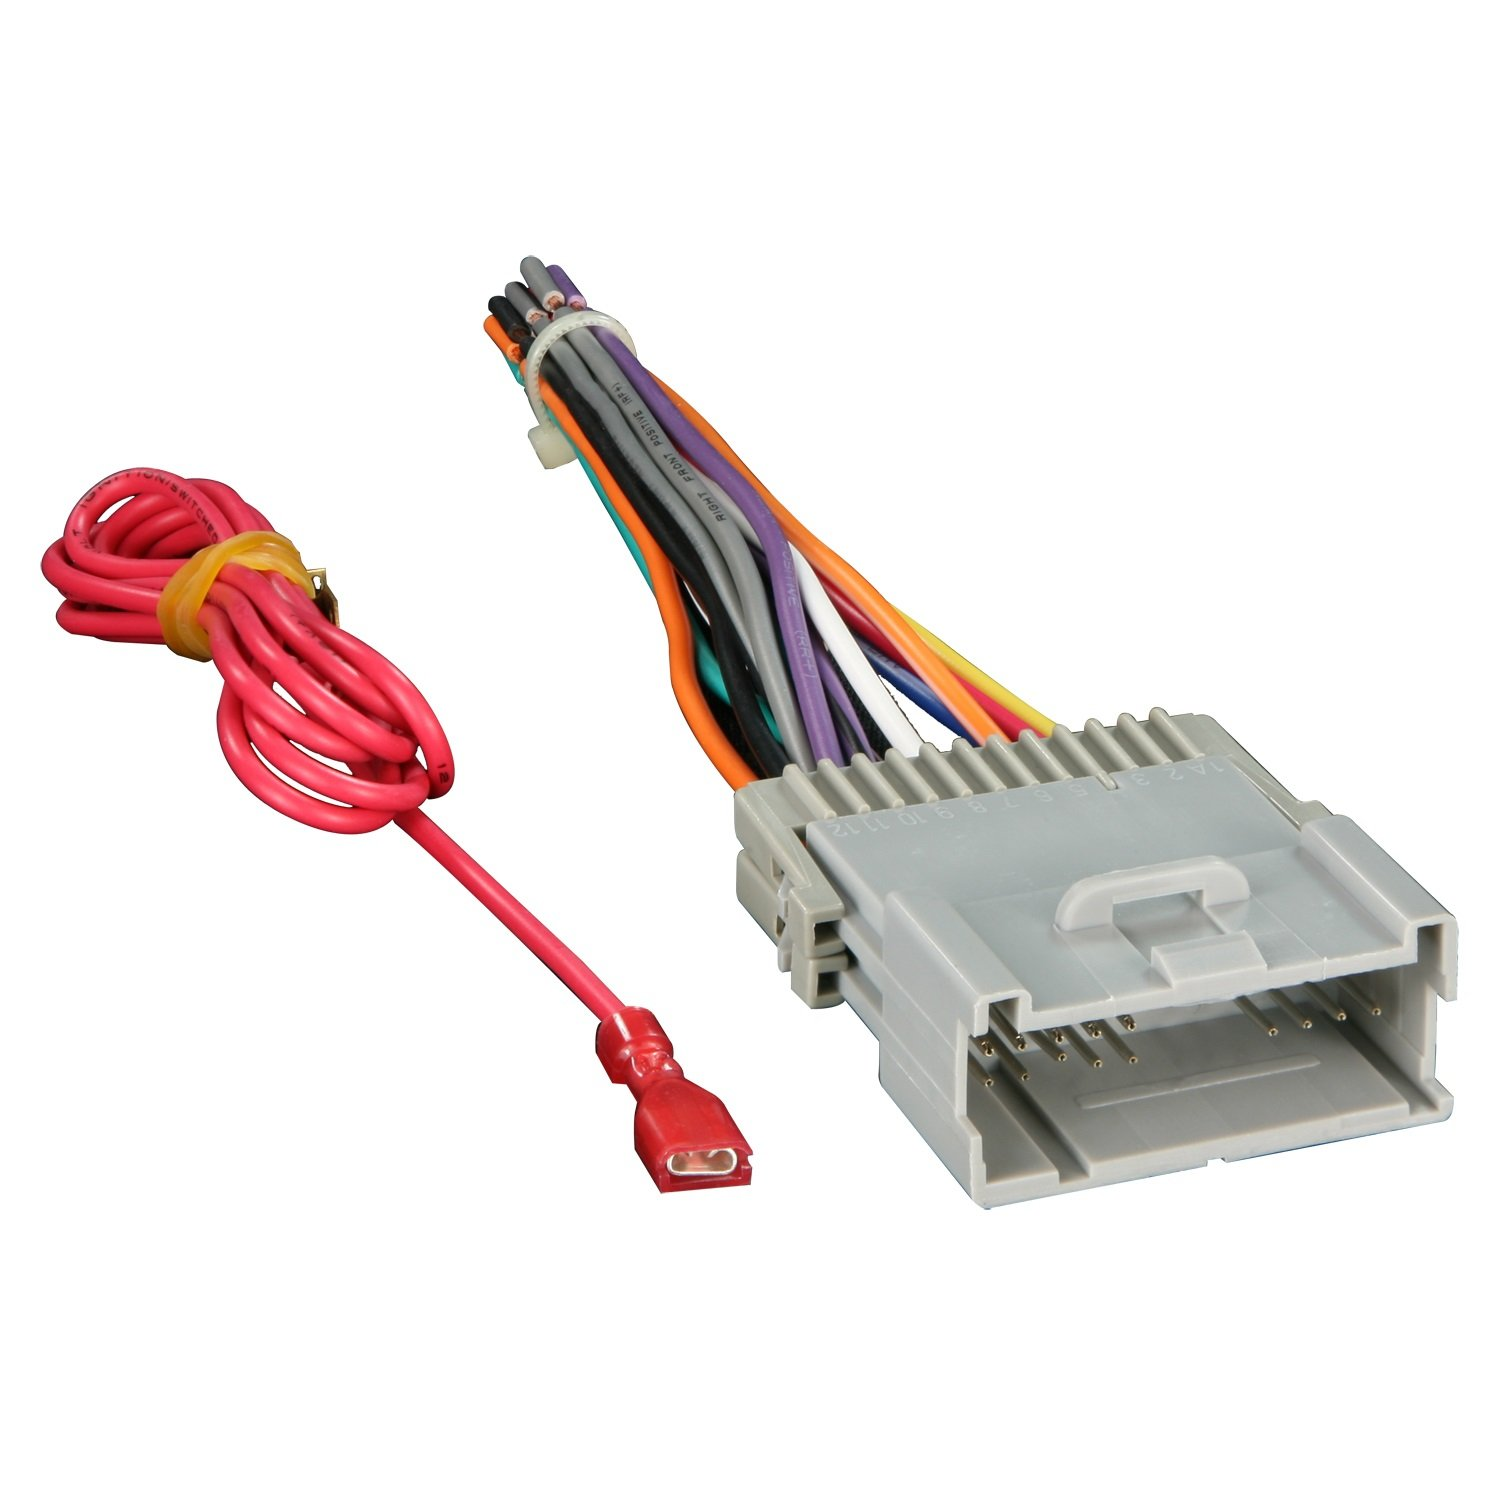 61eewxp9orL._SL1500_ amazon com metra 70 2003 radio wiring harness for gm 98 08 03 impala radio wiring harness at gsmx.co